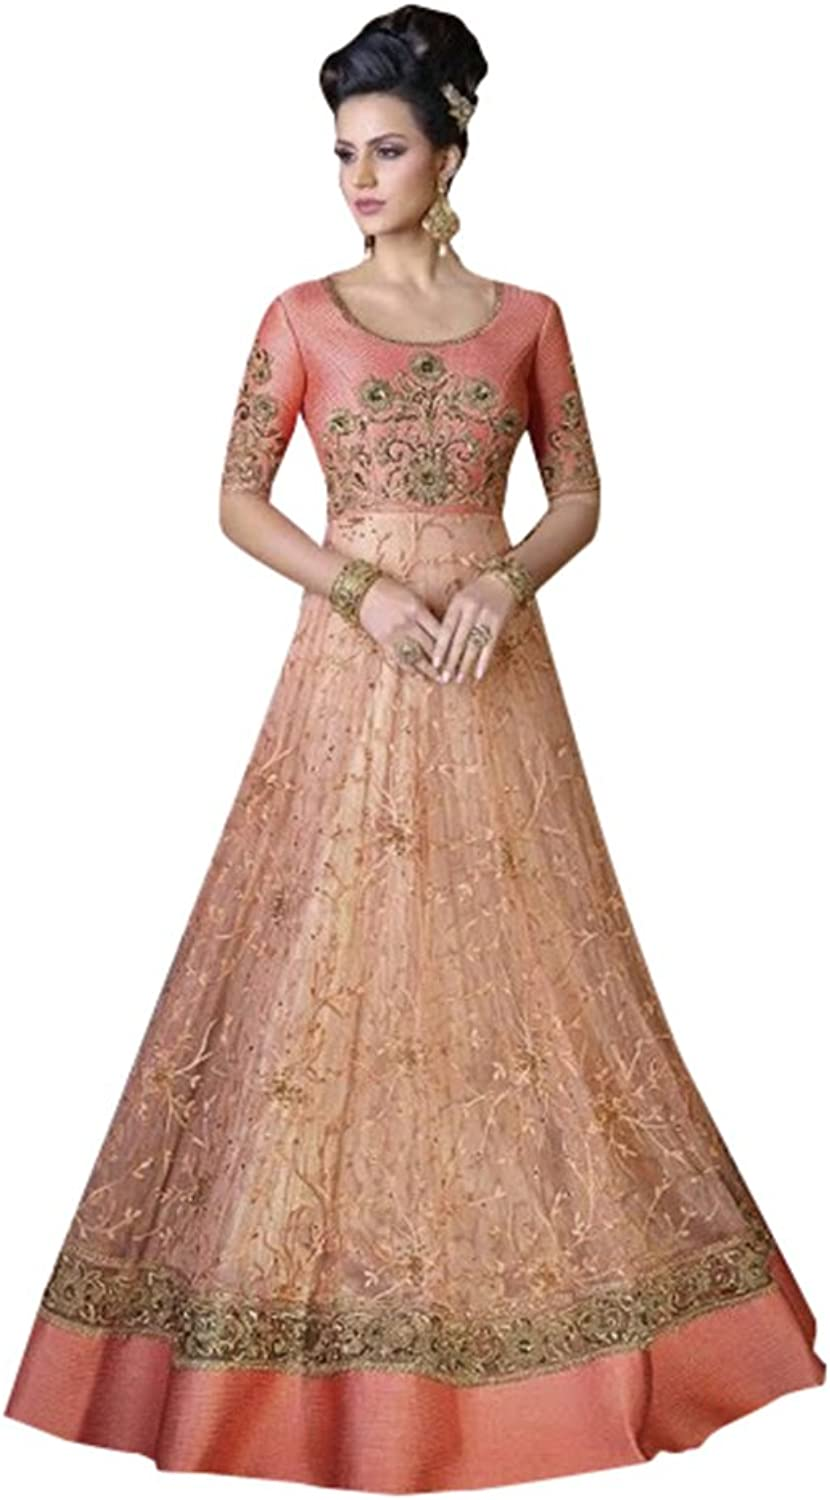 Bollywood Collection Anarkali Salwar Kameez Suit Ceremony Punjabi Muslin 640 8